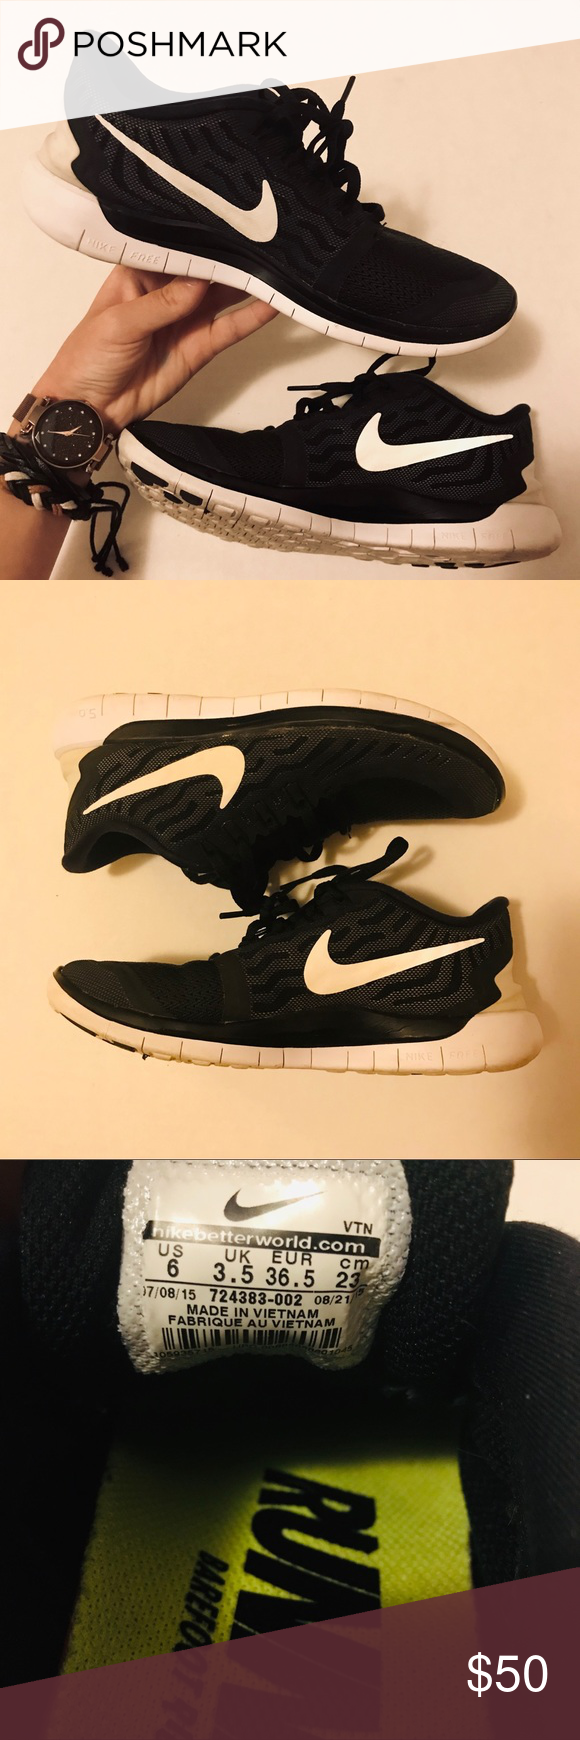 Nike Free 5.0 Running Black and White Sneakers Size 6  Very Little Wear Great Condition  Same or Next Day Shipping  Very Comfortable Nike Shoes Sneakers #nikefreeoutfit